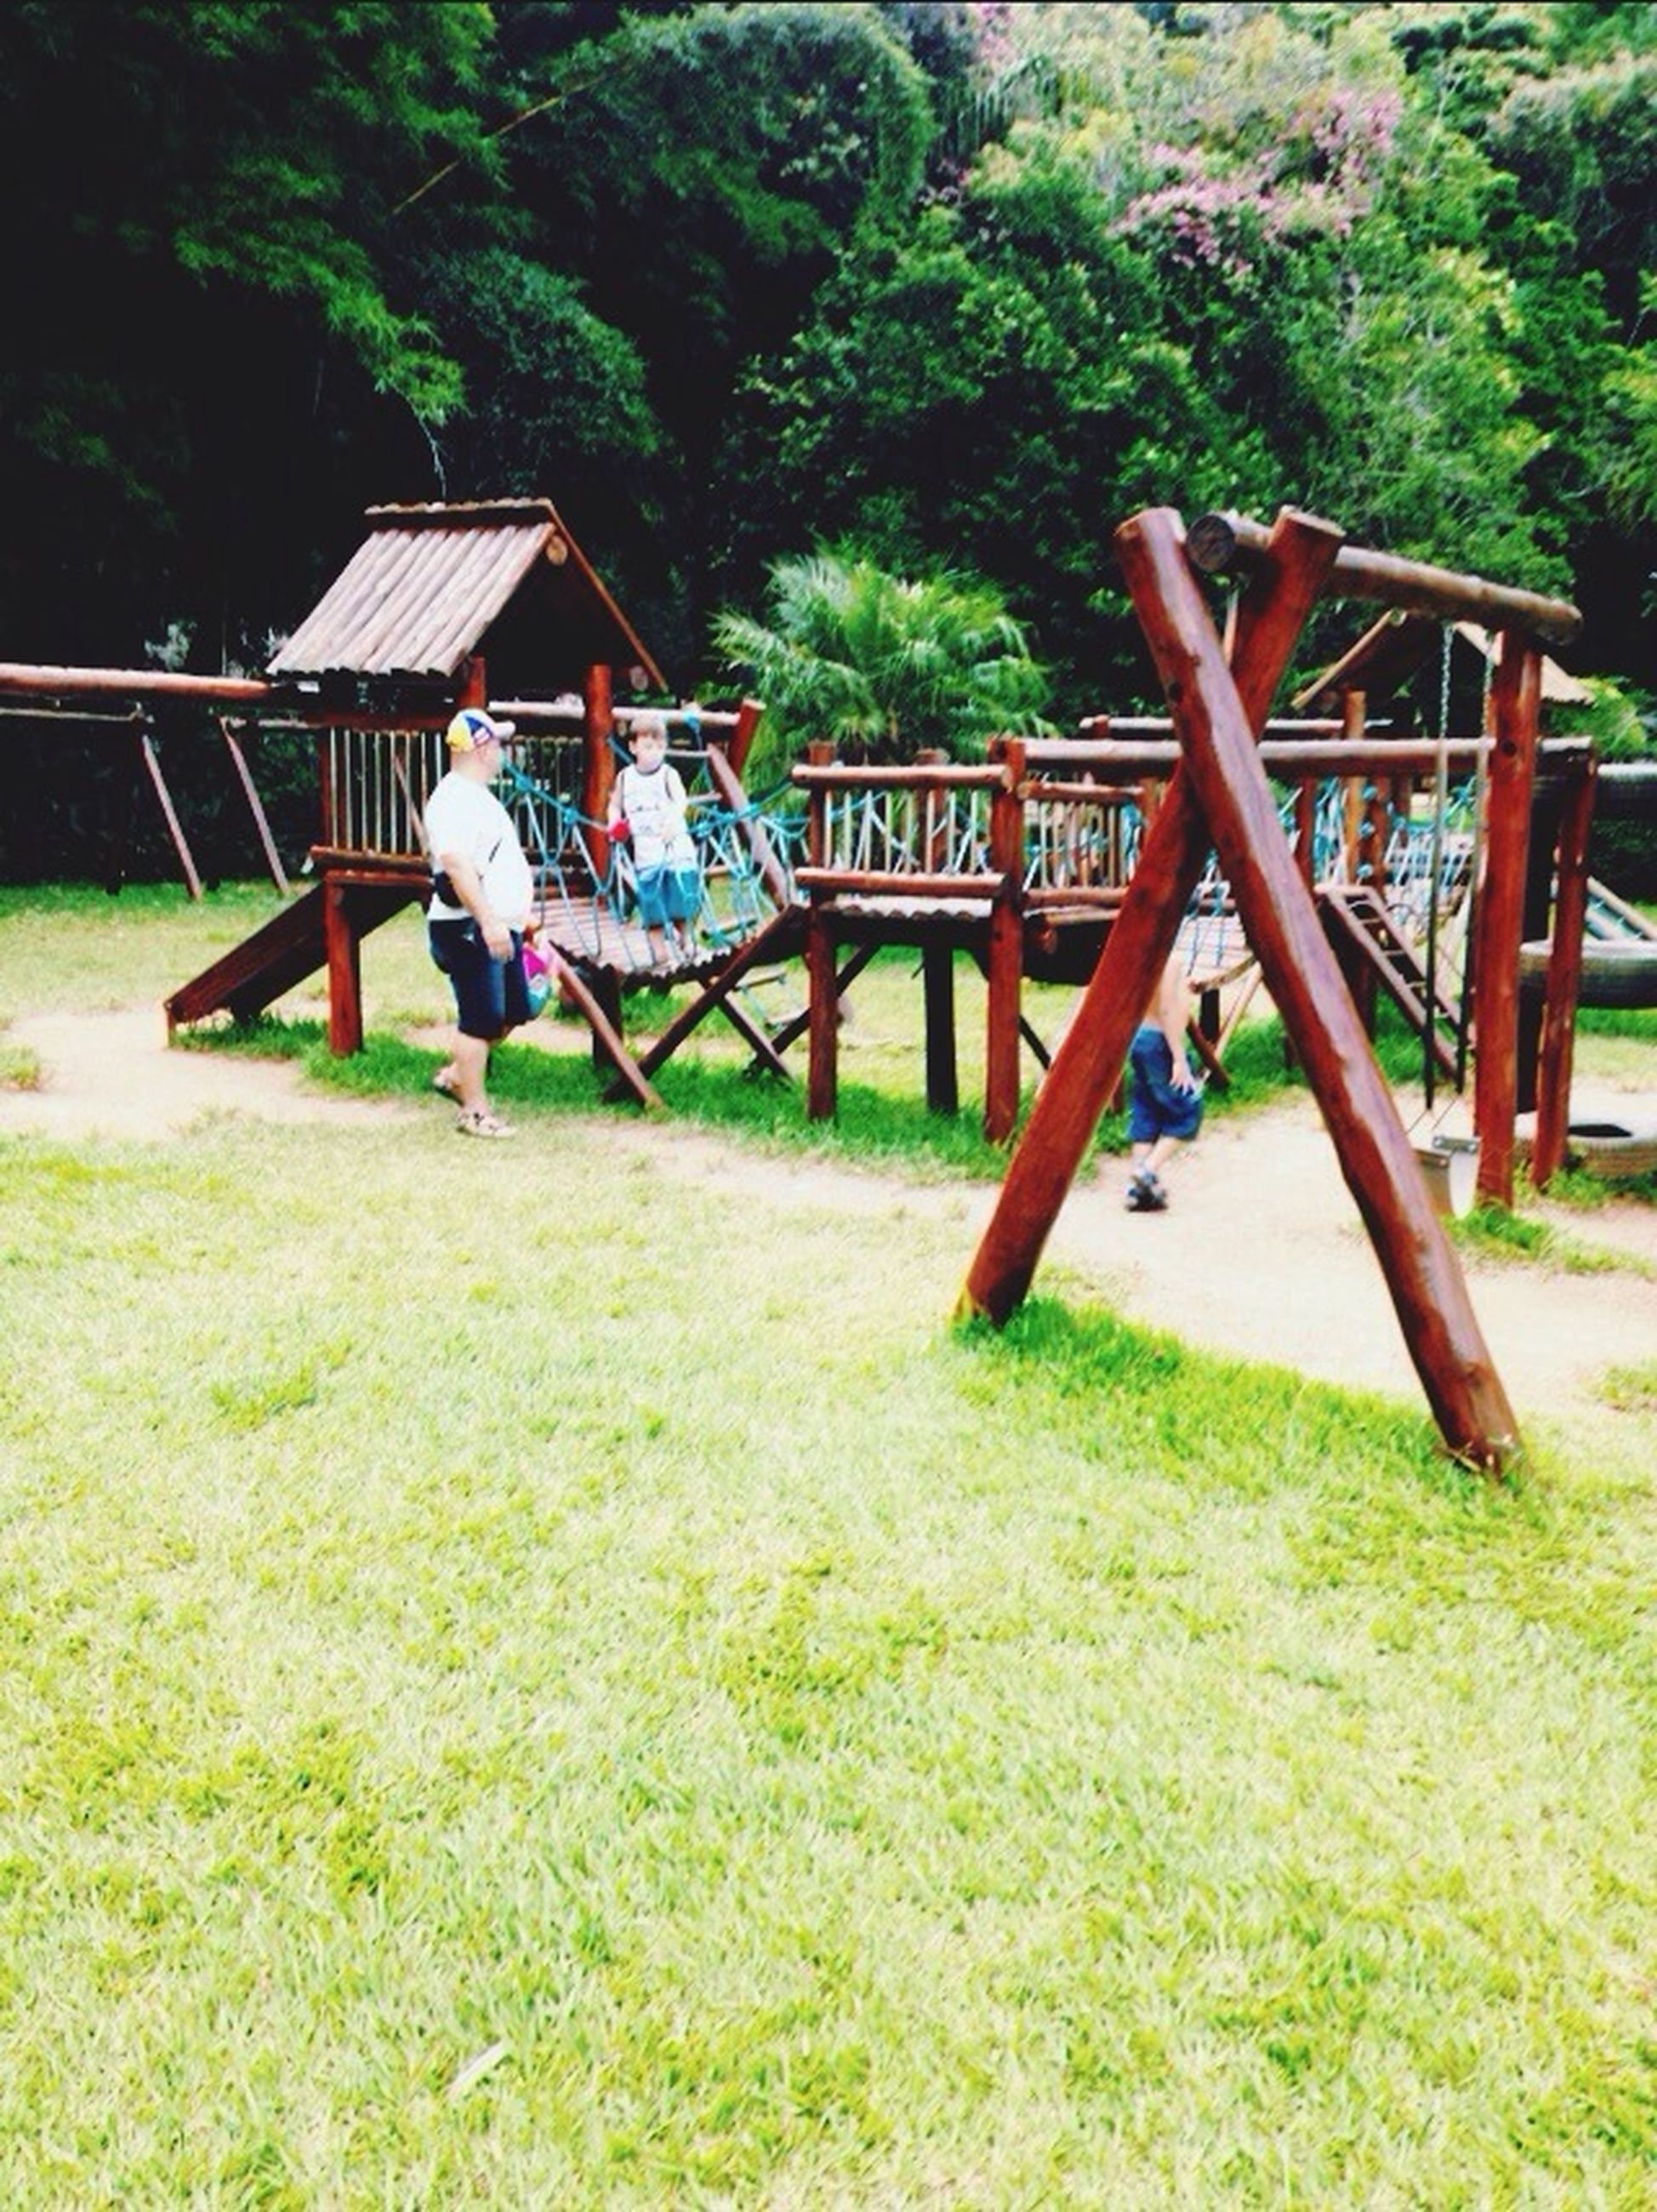 grass, tree, playground, park - man made space, built structure, wood - material, childhood, green color, bench, sunlight, absence, field, day, nature, chair, outdoors, grassy, swing, relaxation, growth